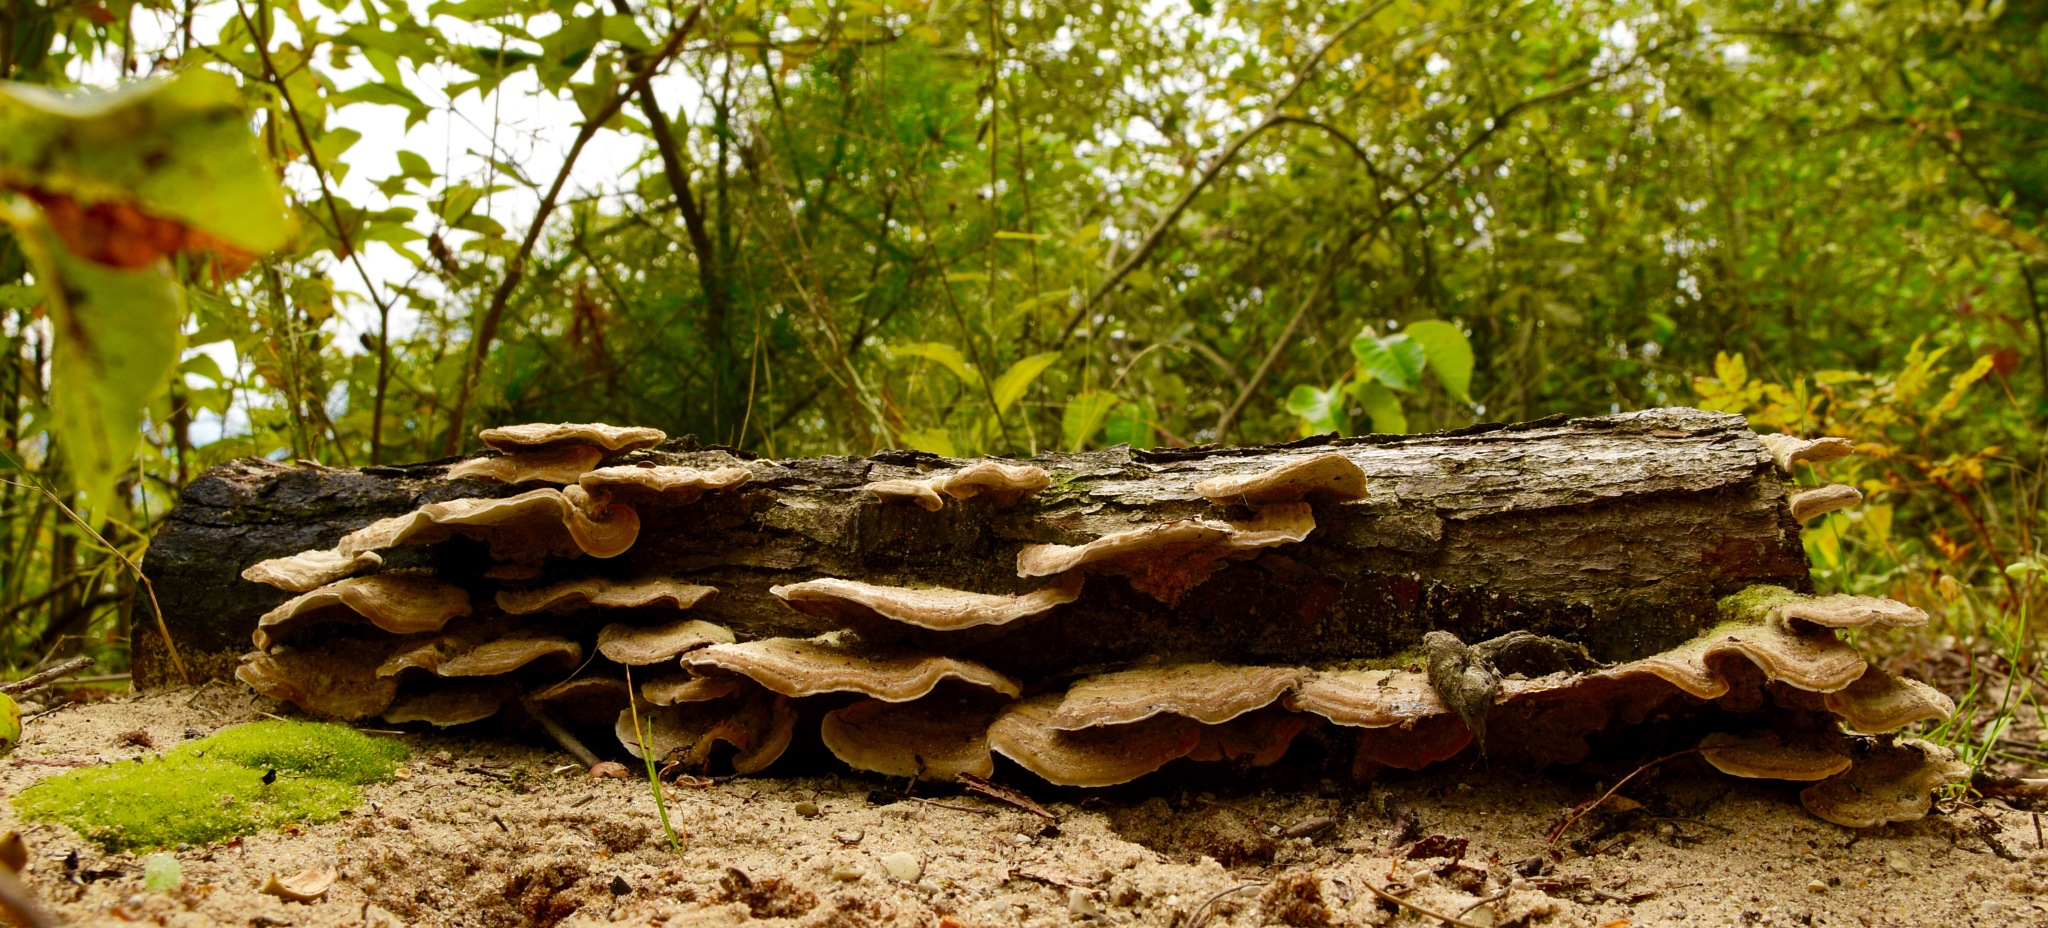 Log covered with fungus by John  Lepisto